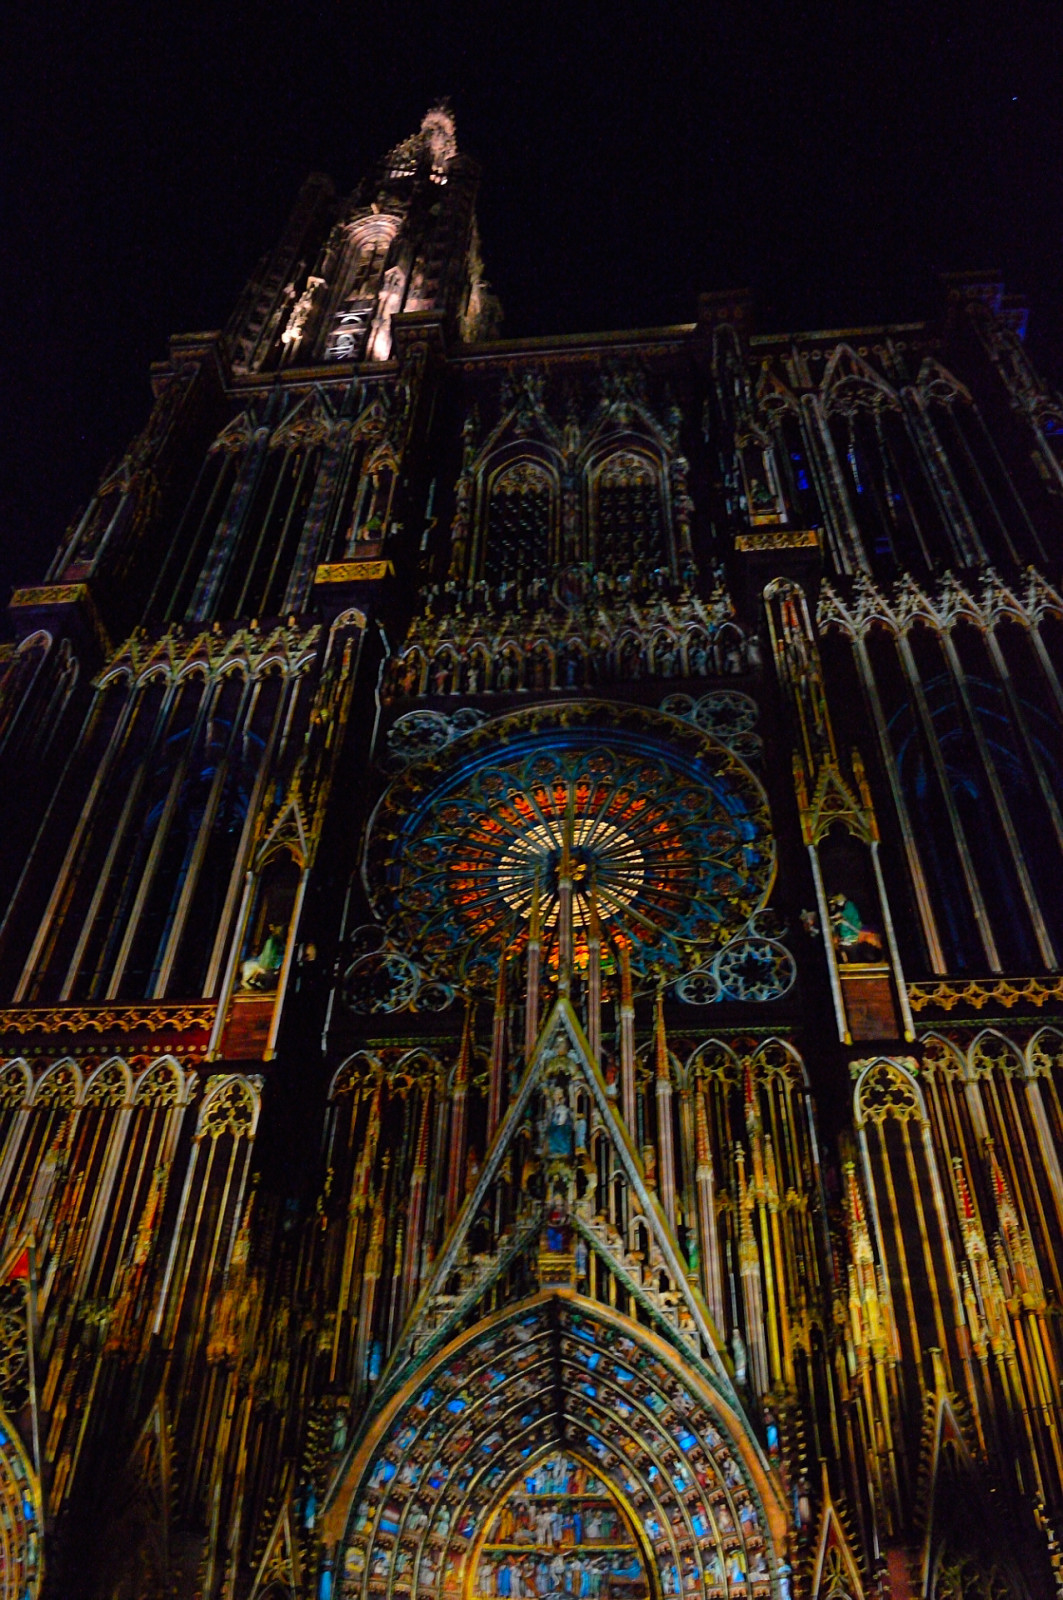 One day in Strasbourg: Front fascade illumination, Notre Dame Cathedral